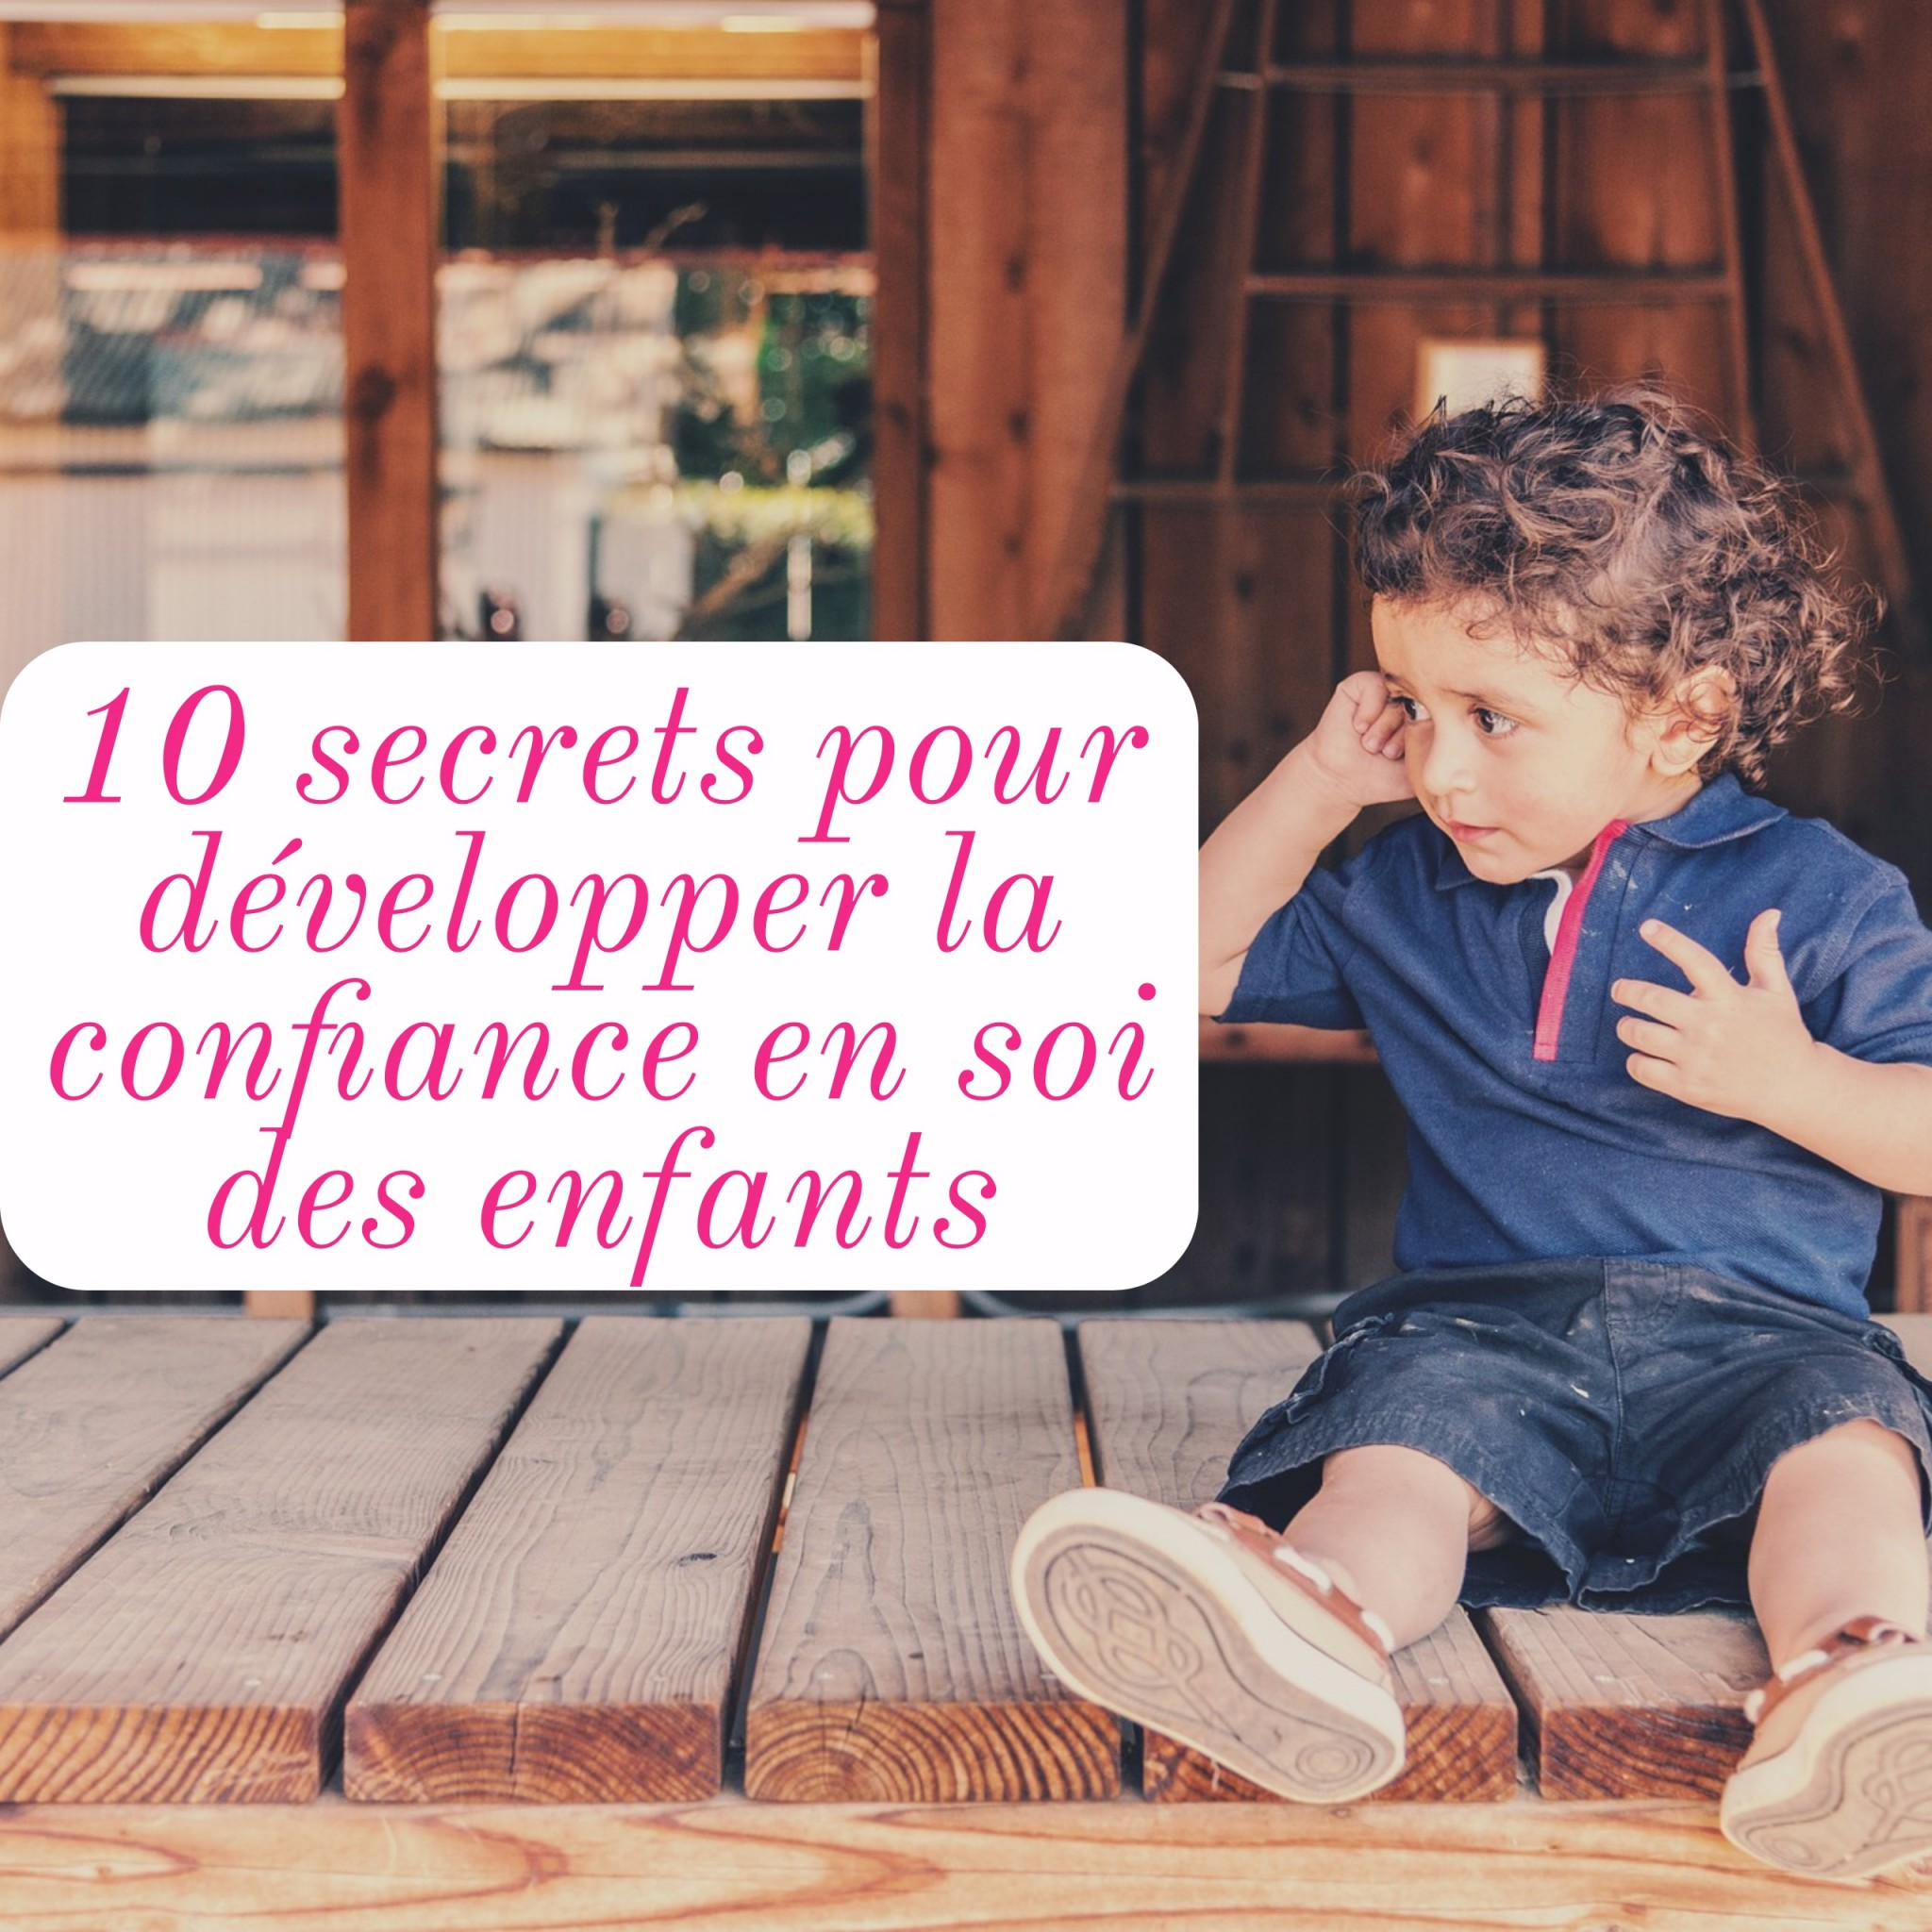 10 secrets pour d velopper la confiance en soi des enfants. Black Bedroom Furniture Sets. Home Design Ideas